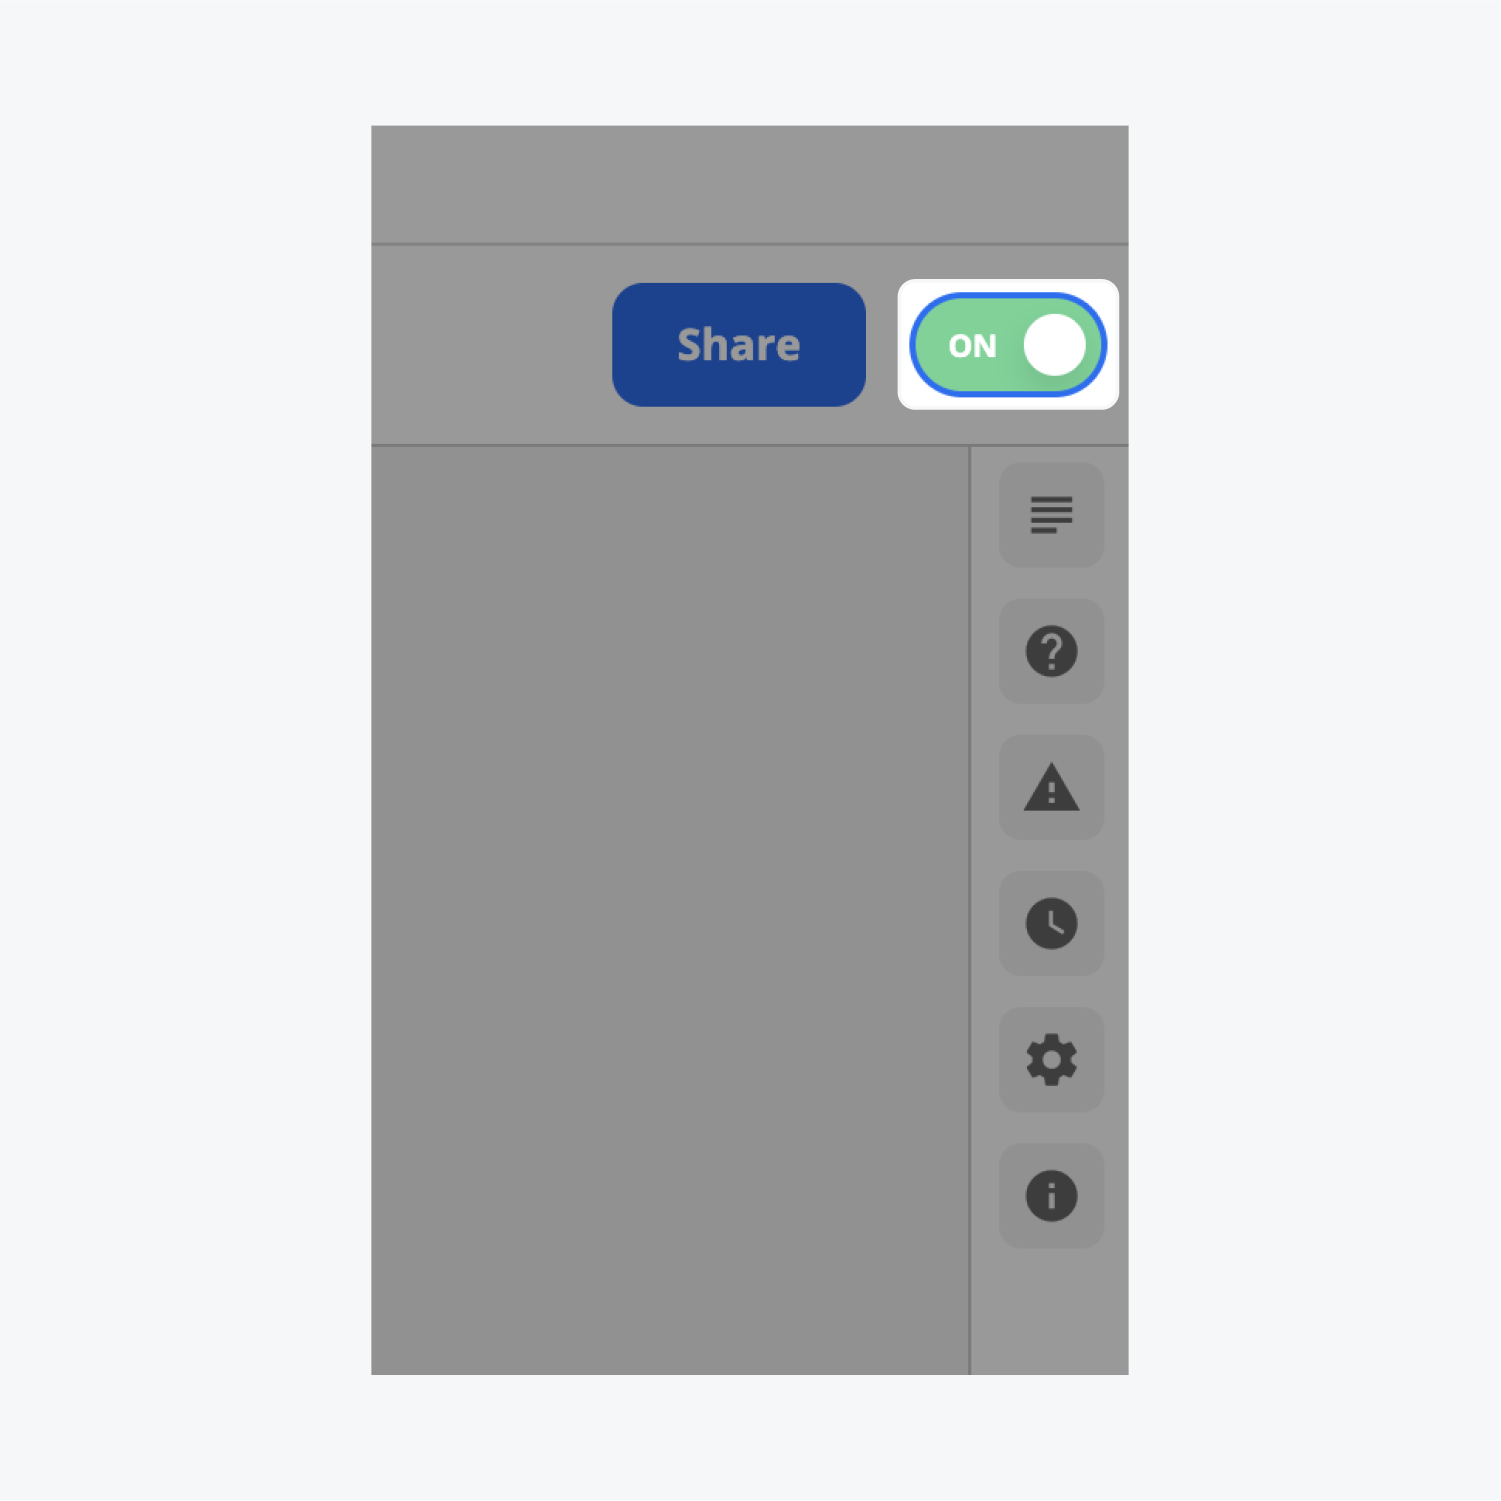 The on and off switch for the Zap created is turned on. The switch button is green and says ON.